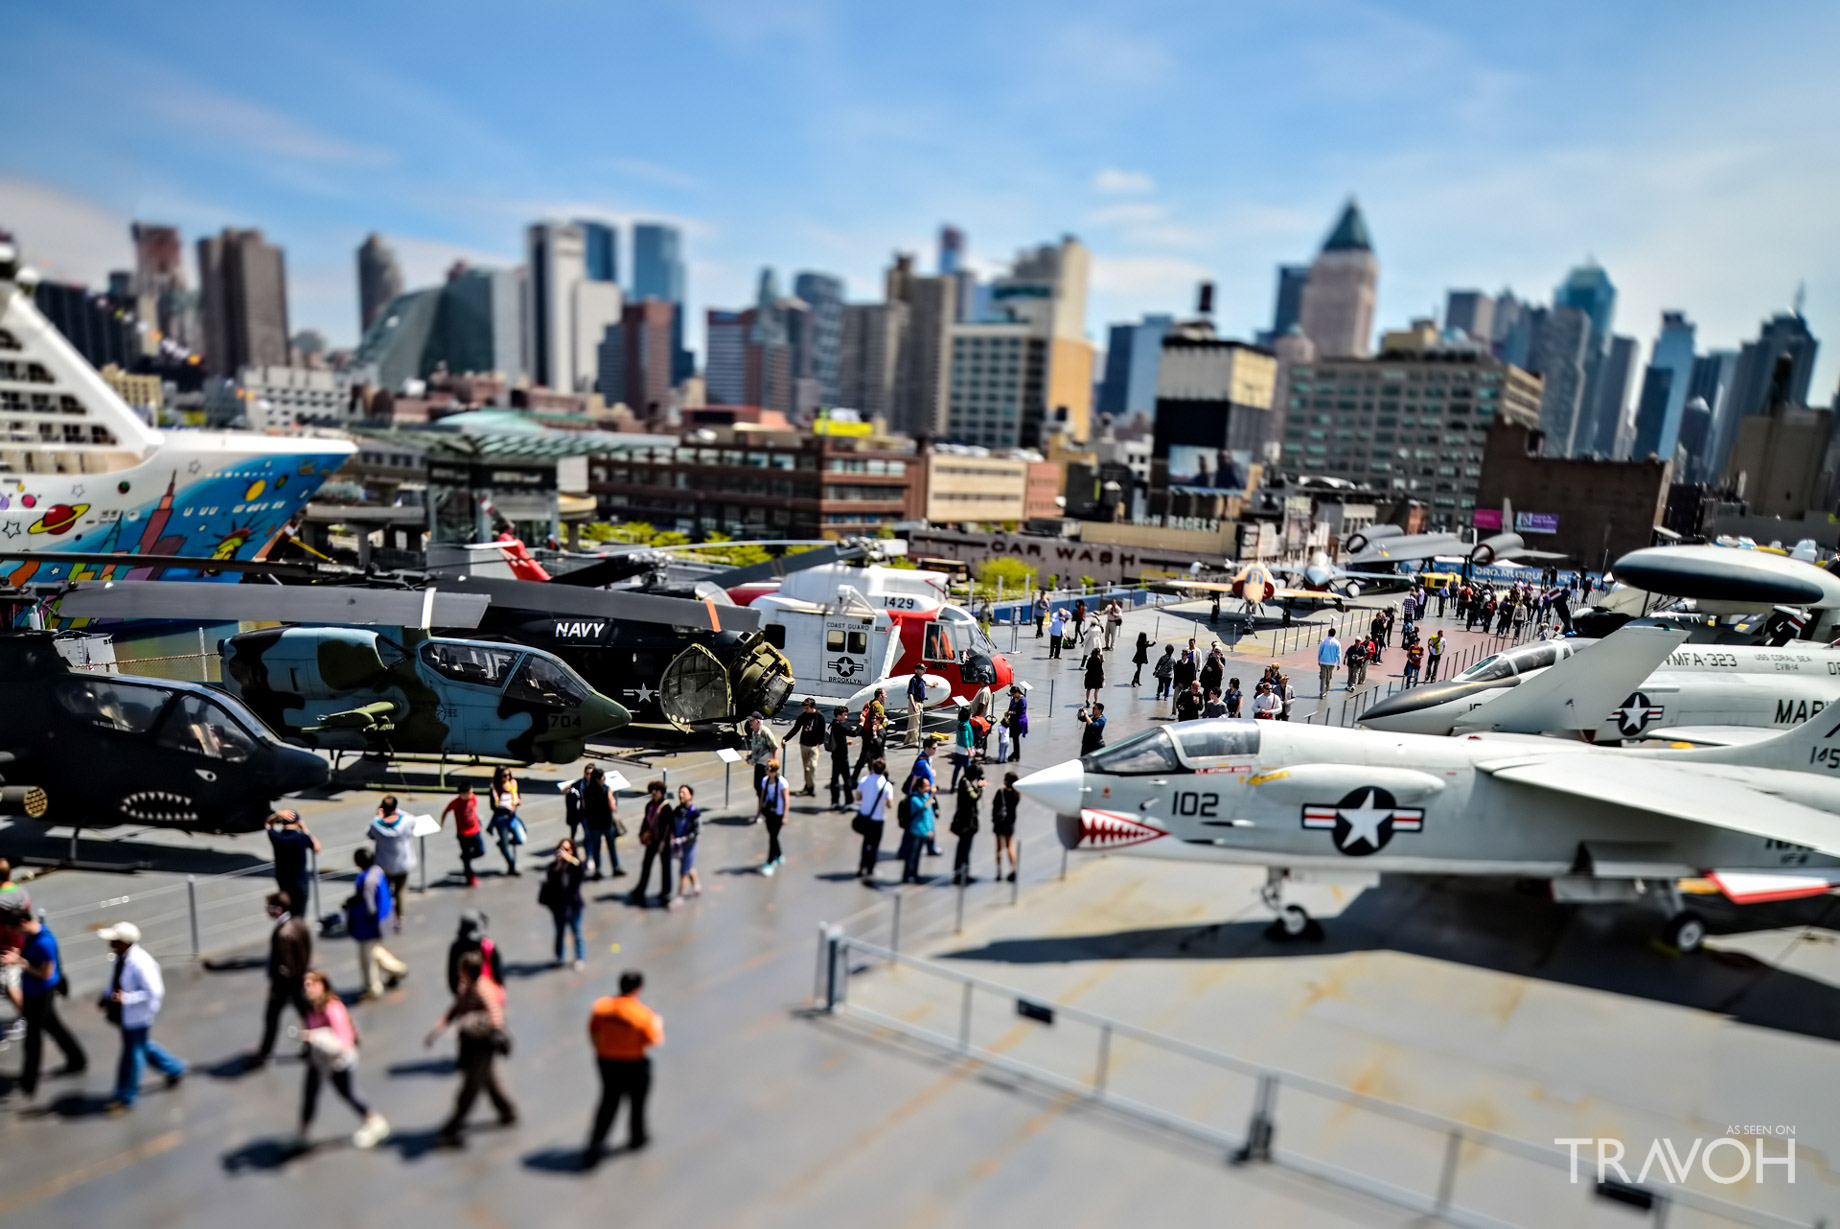 Enjoy the Sights at the Intrepid Sea, Air & Space Museum - Pier 86, W 46th St & 12th Ave, New York, NY, USA